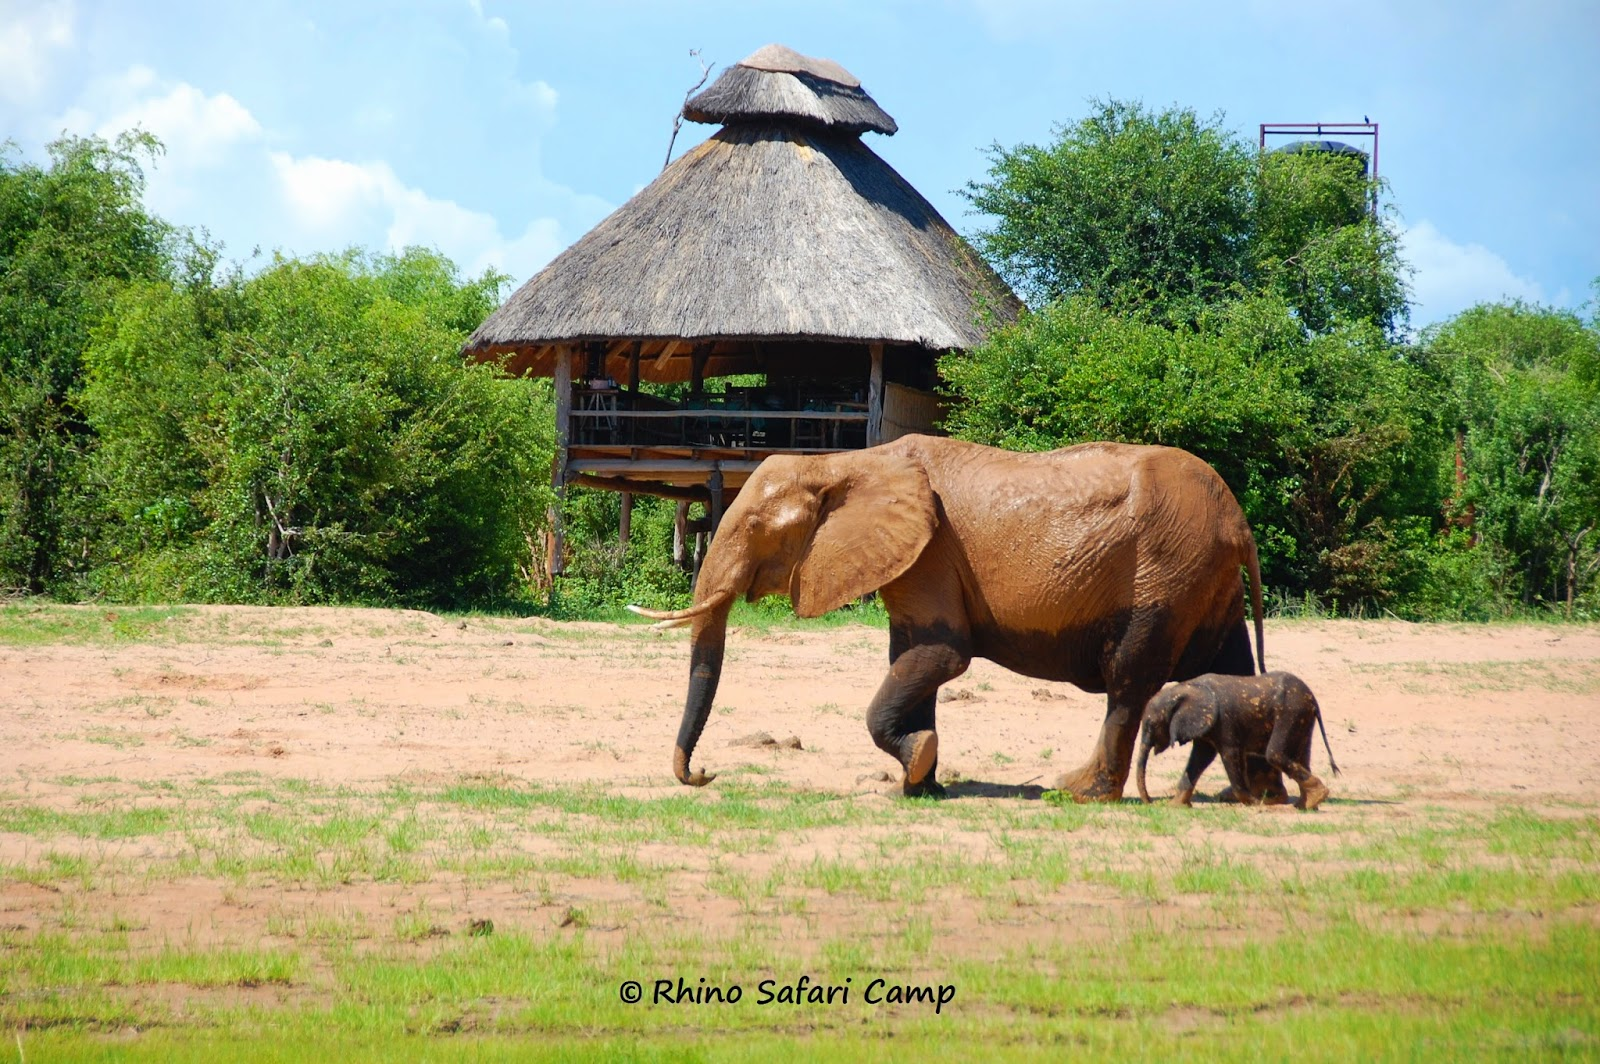 Rhino Safari Camp - Matusadona National Park - Lake Kariba, Zimbabwe